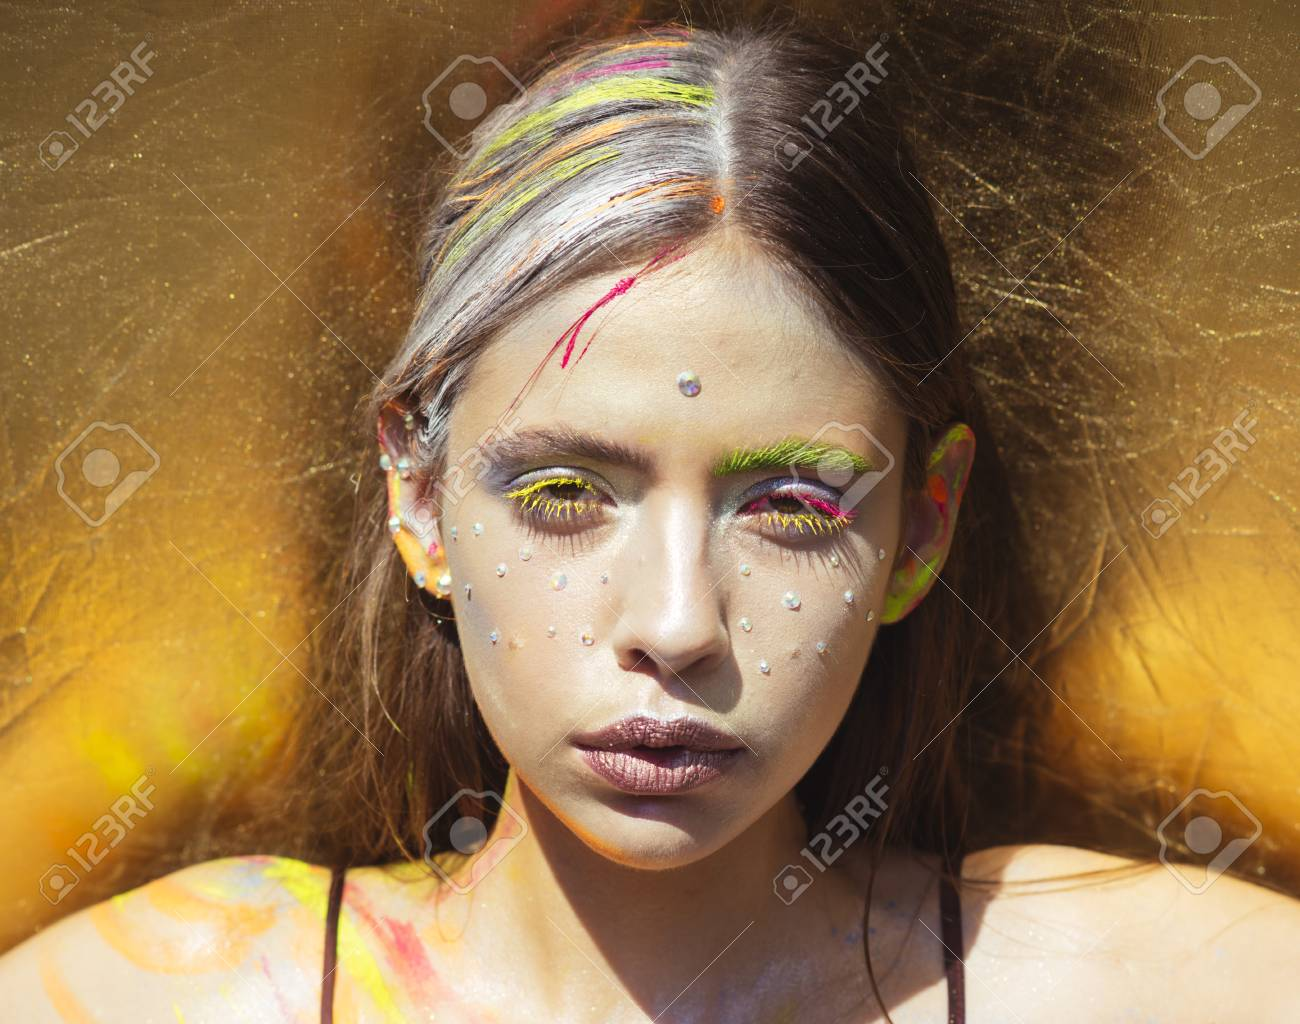 Indian woman with colorful neon paint makeup face. Paint party, colors festival. Holi